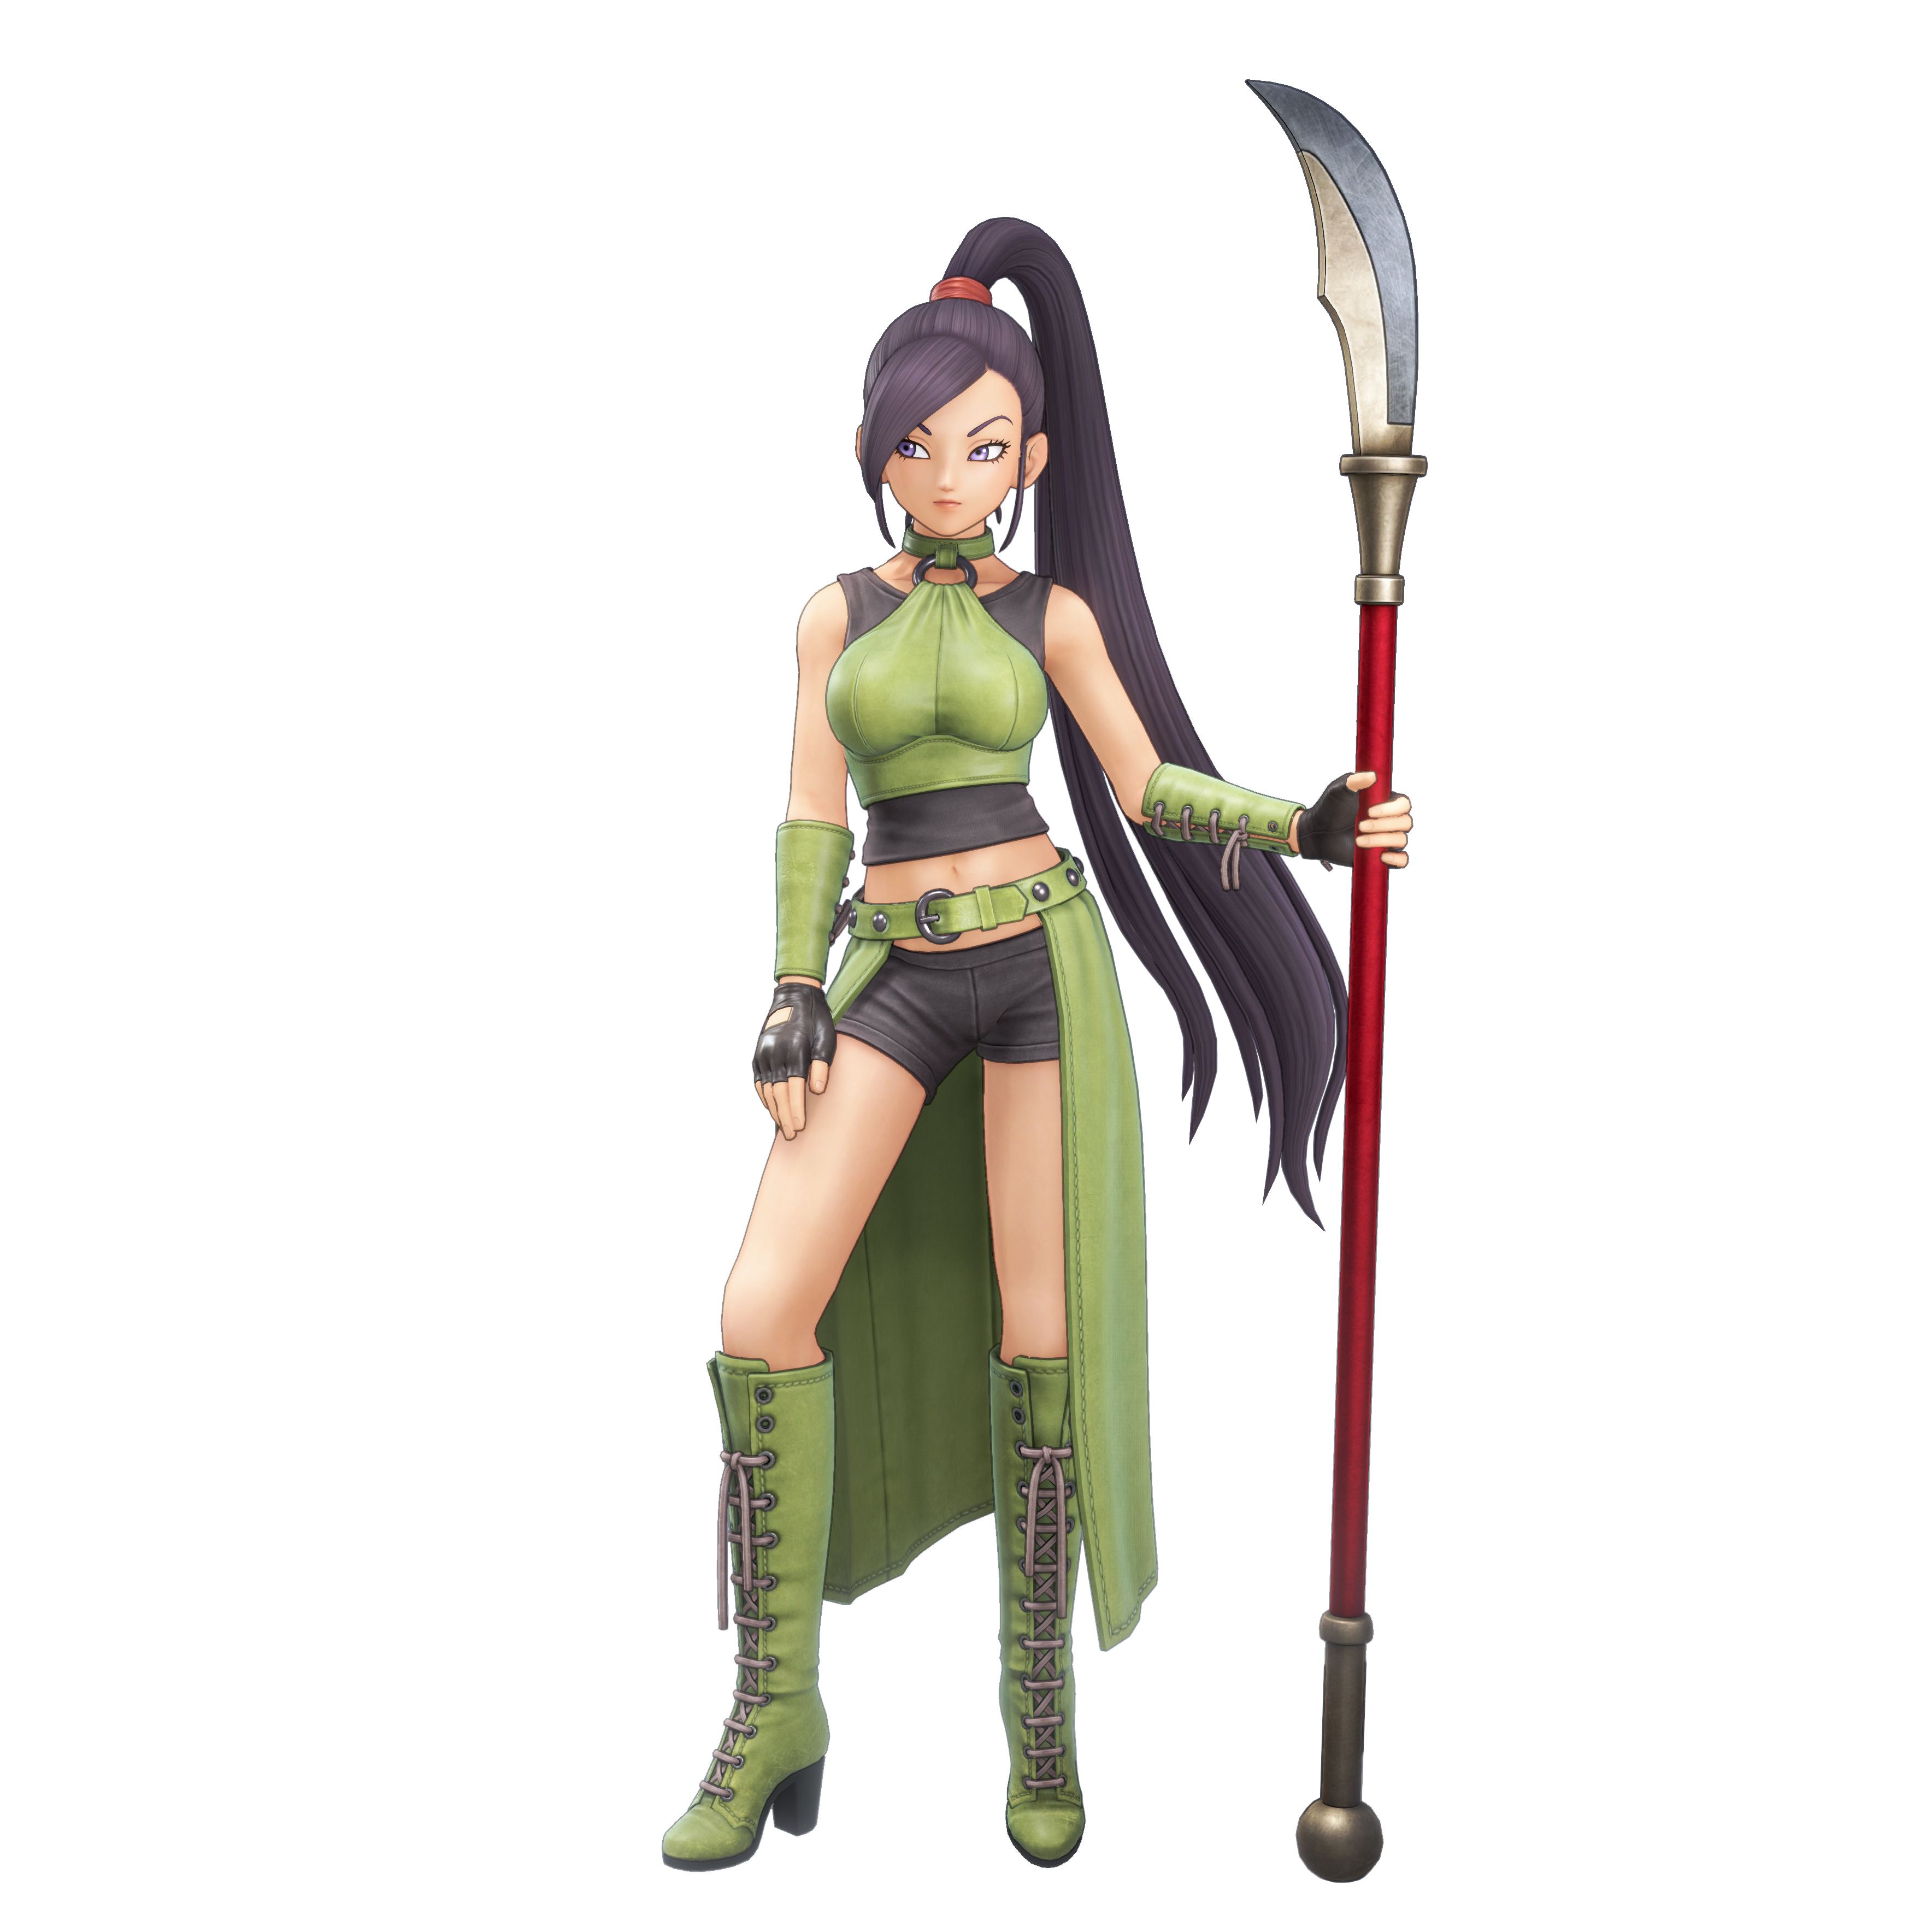 Dragon Quest Xi Best Party Guide The Best Party Builds And Setups For Every Situation Rpg Site Jade Dragon Dragon Quest Dragon